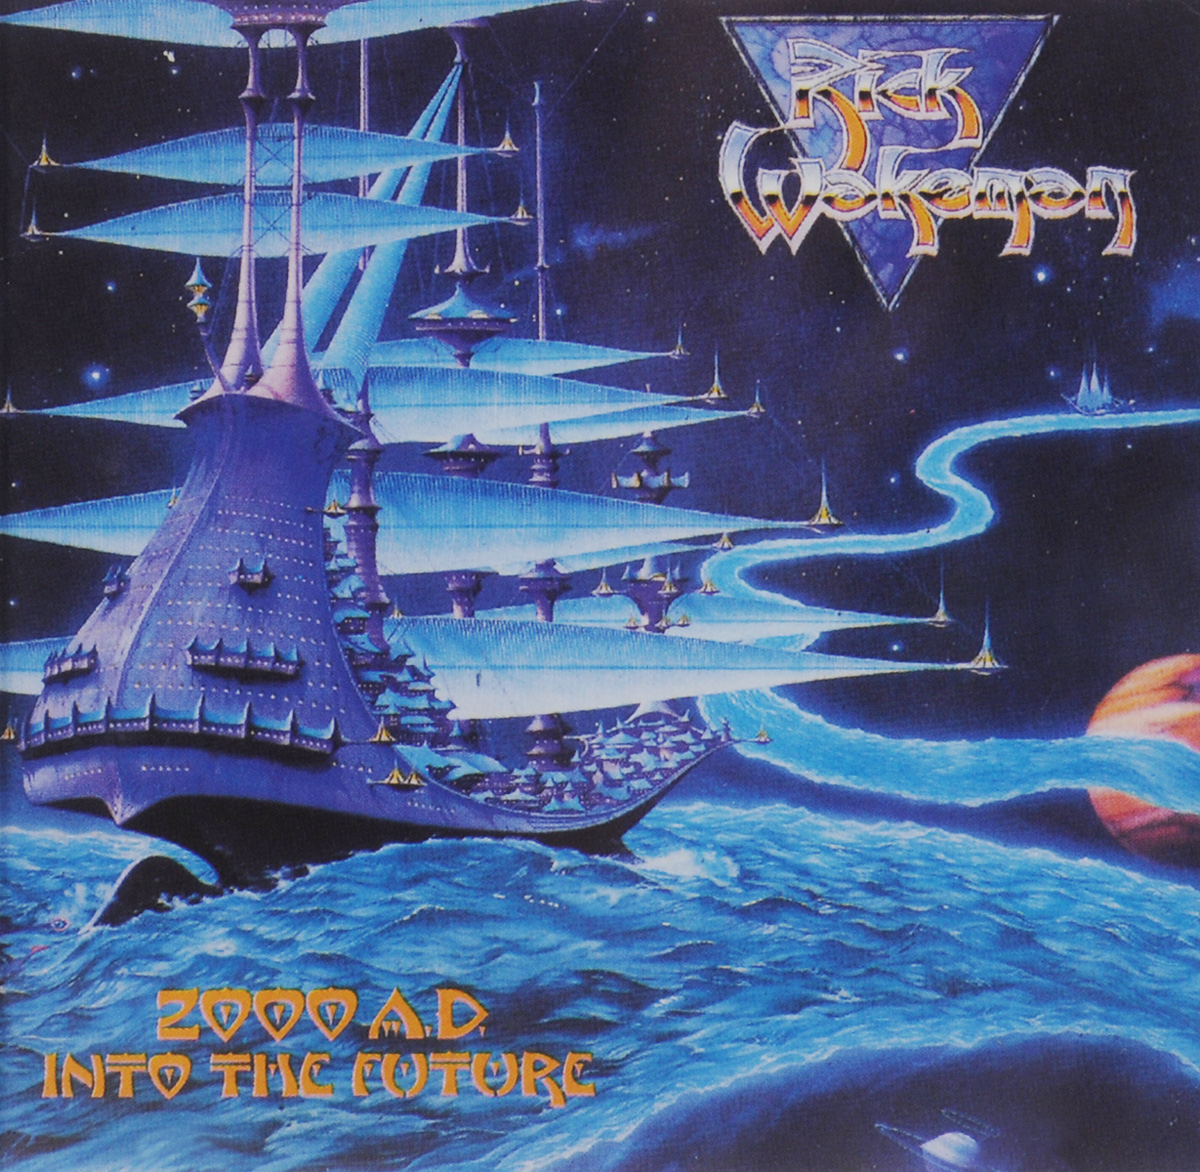 Рик Уэйкман Rick Wakeman. 2000 A.D. Into The Future пленка тонировочная president 5% 0 5м х 3м